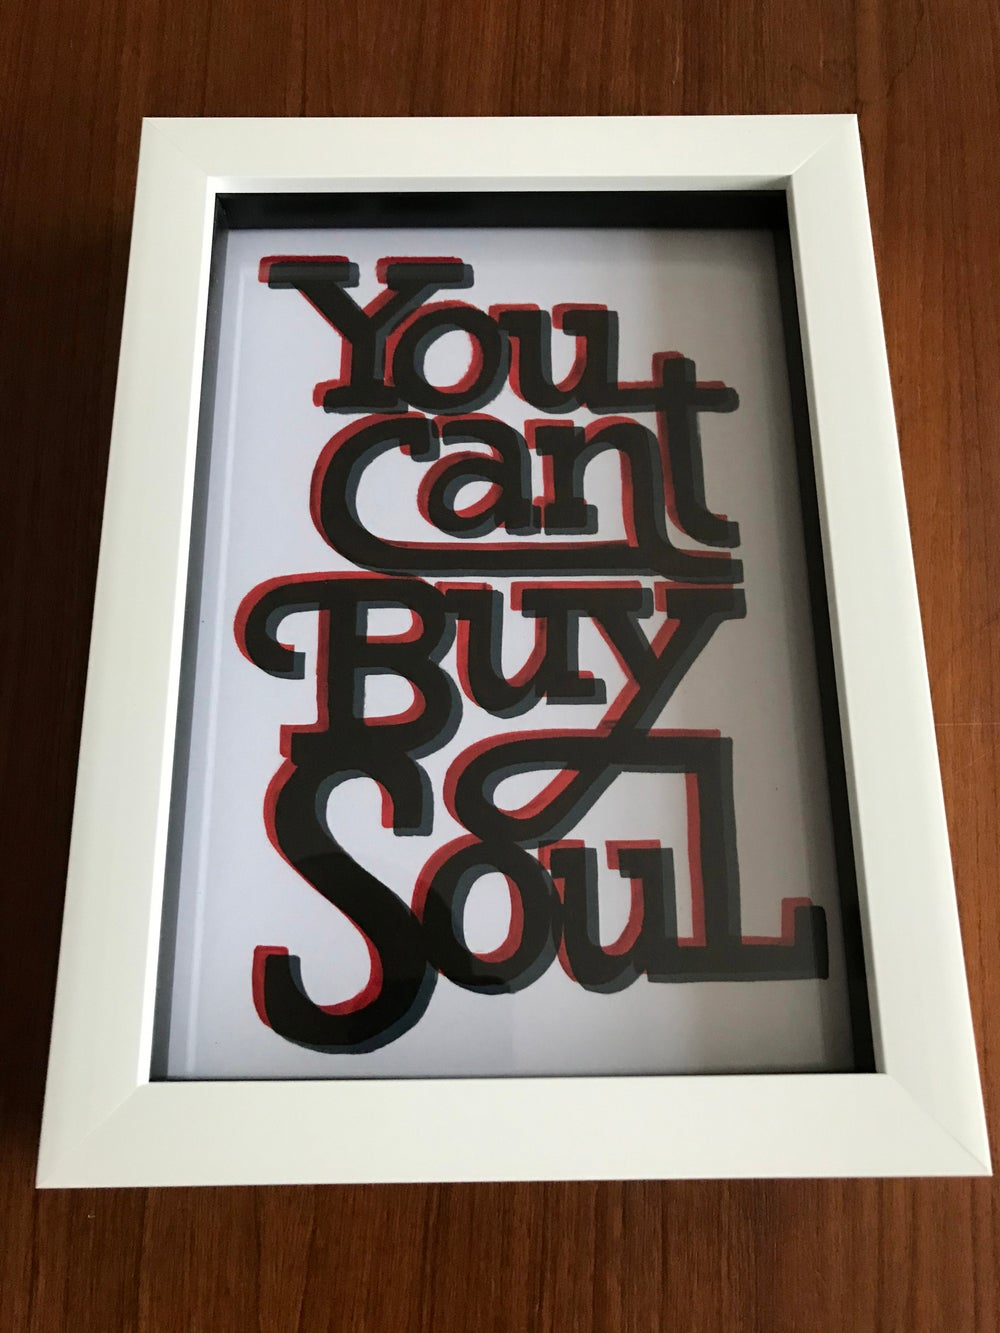 You can't buy soul - A5 print